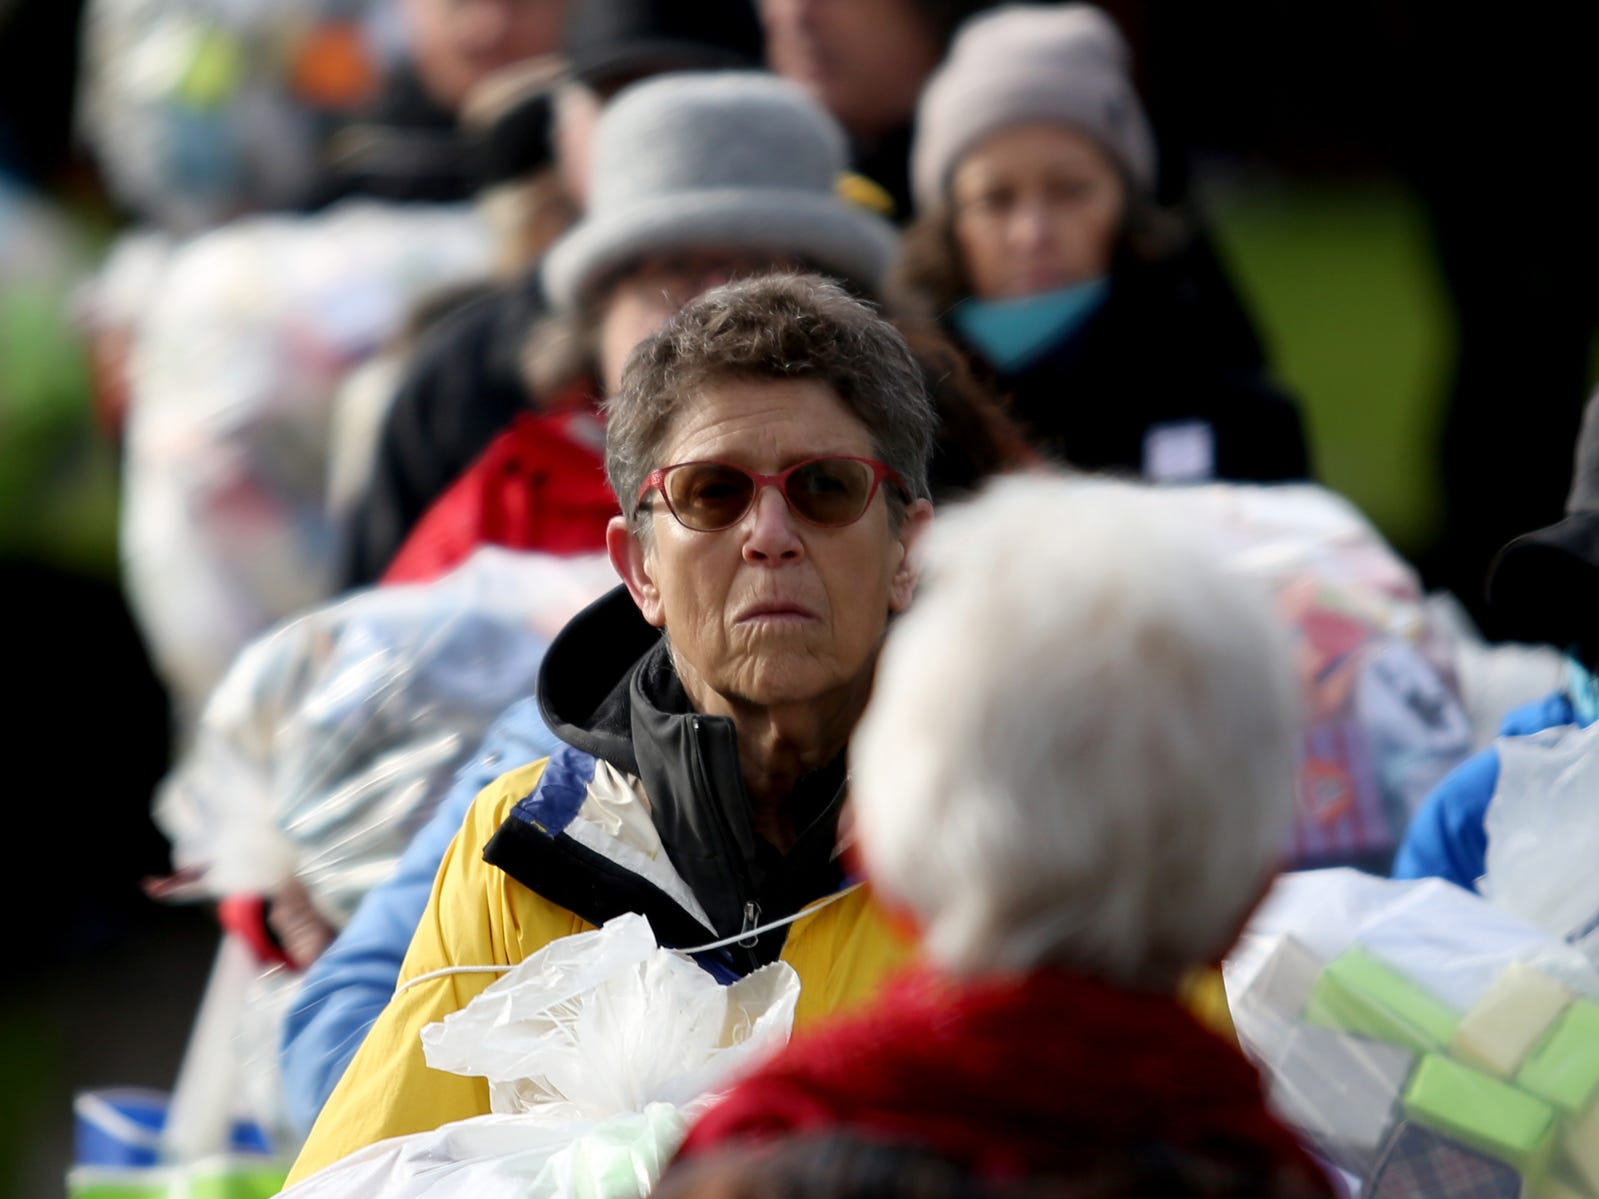 Ellen Goldberg, of Portland, and others deliver and display more than 37,000 handmade origami boxes, representing victims of gun violence, at the Oregon State Capitol in Salem on Friday, Feb. 15, 2019. The Soul Box Project, started by Portland artist Leslie Lee, aims to reveal the enormity of the gun fire epidemic.